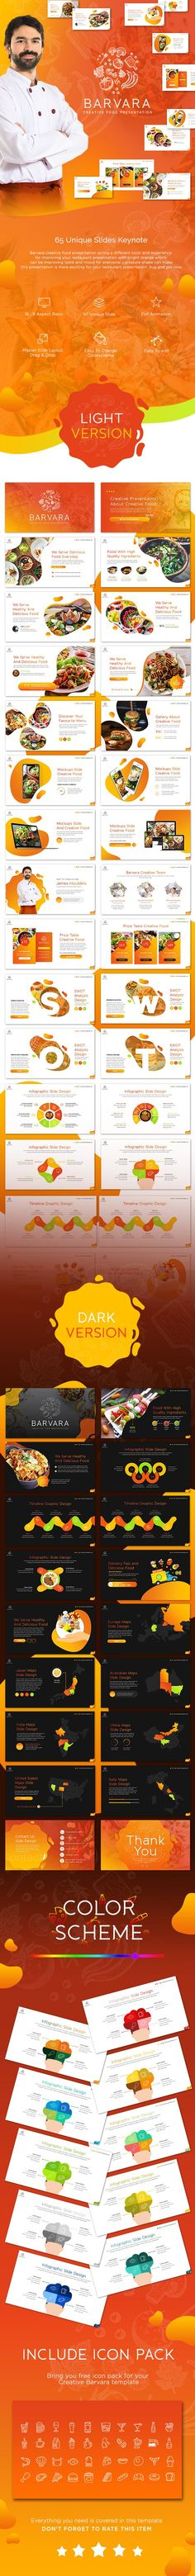 Buy Barvara Food Presentation Template by Slidesignus on GraphicRiver. Description : The best templates for your Food Presentation, minimalist, elegant, and certainly professional, so your. Creative Powerpoint Templates, Best Templates, Powerpoint Presentation Templates, Keynote Template, Text Pictures, Creative Pictures, Presentation Design, Light In The Dark, Make It Simple